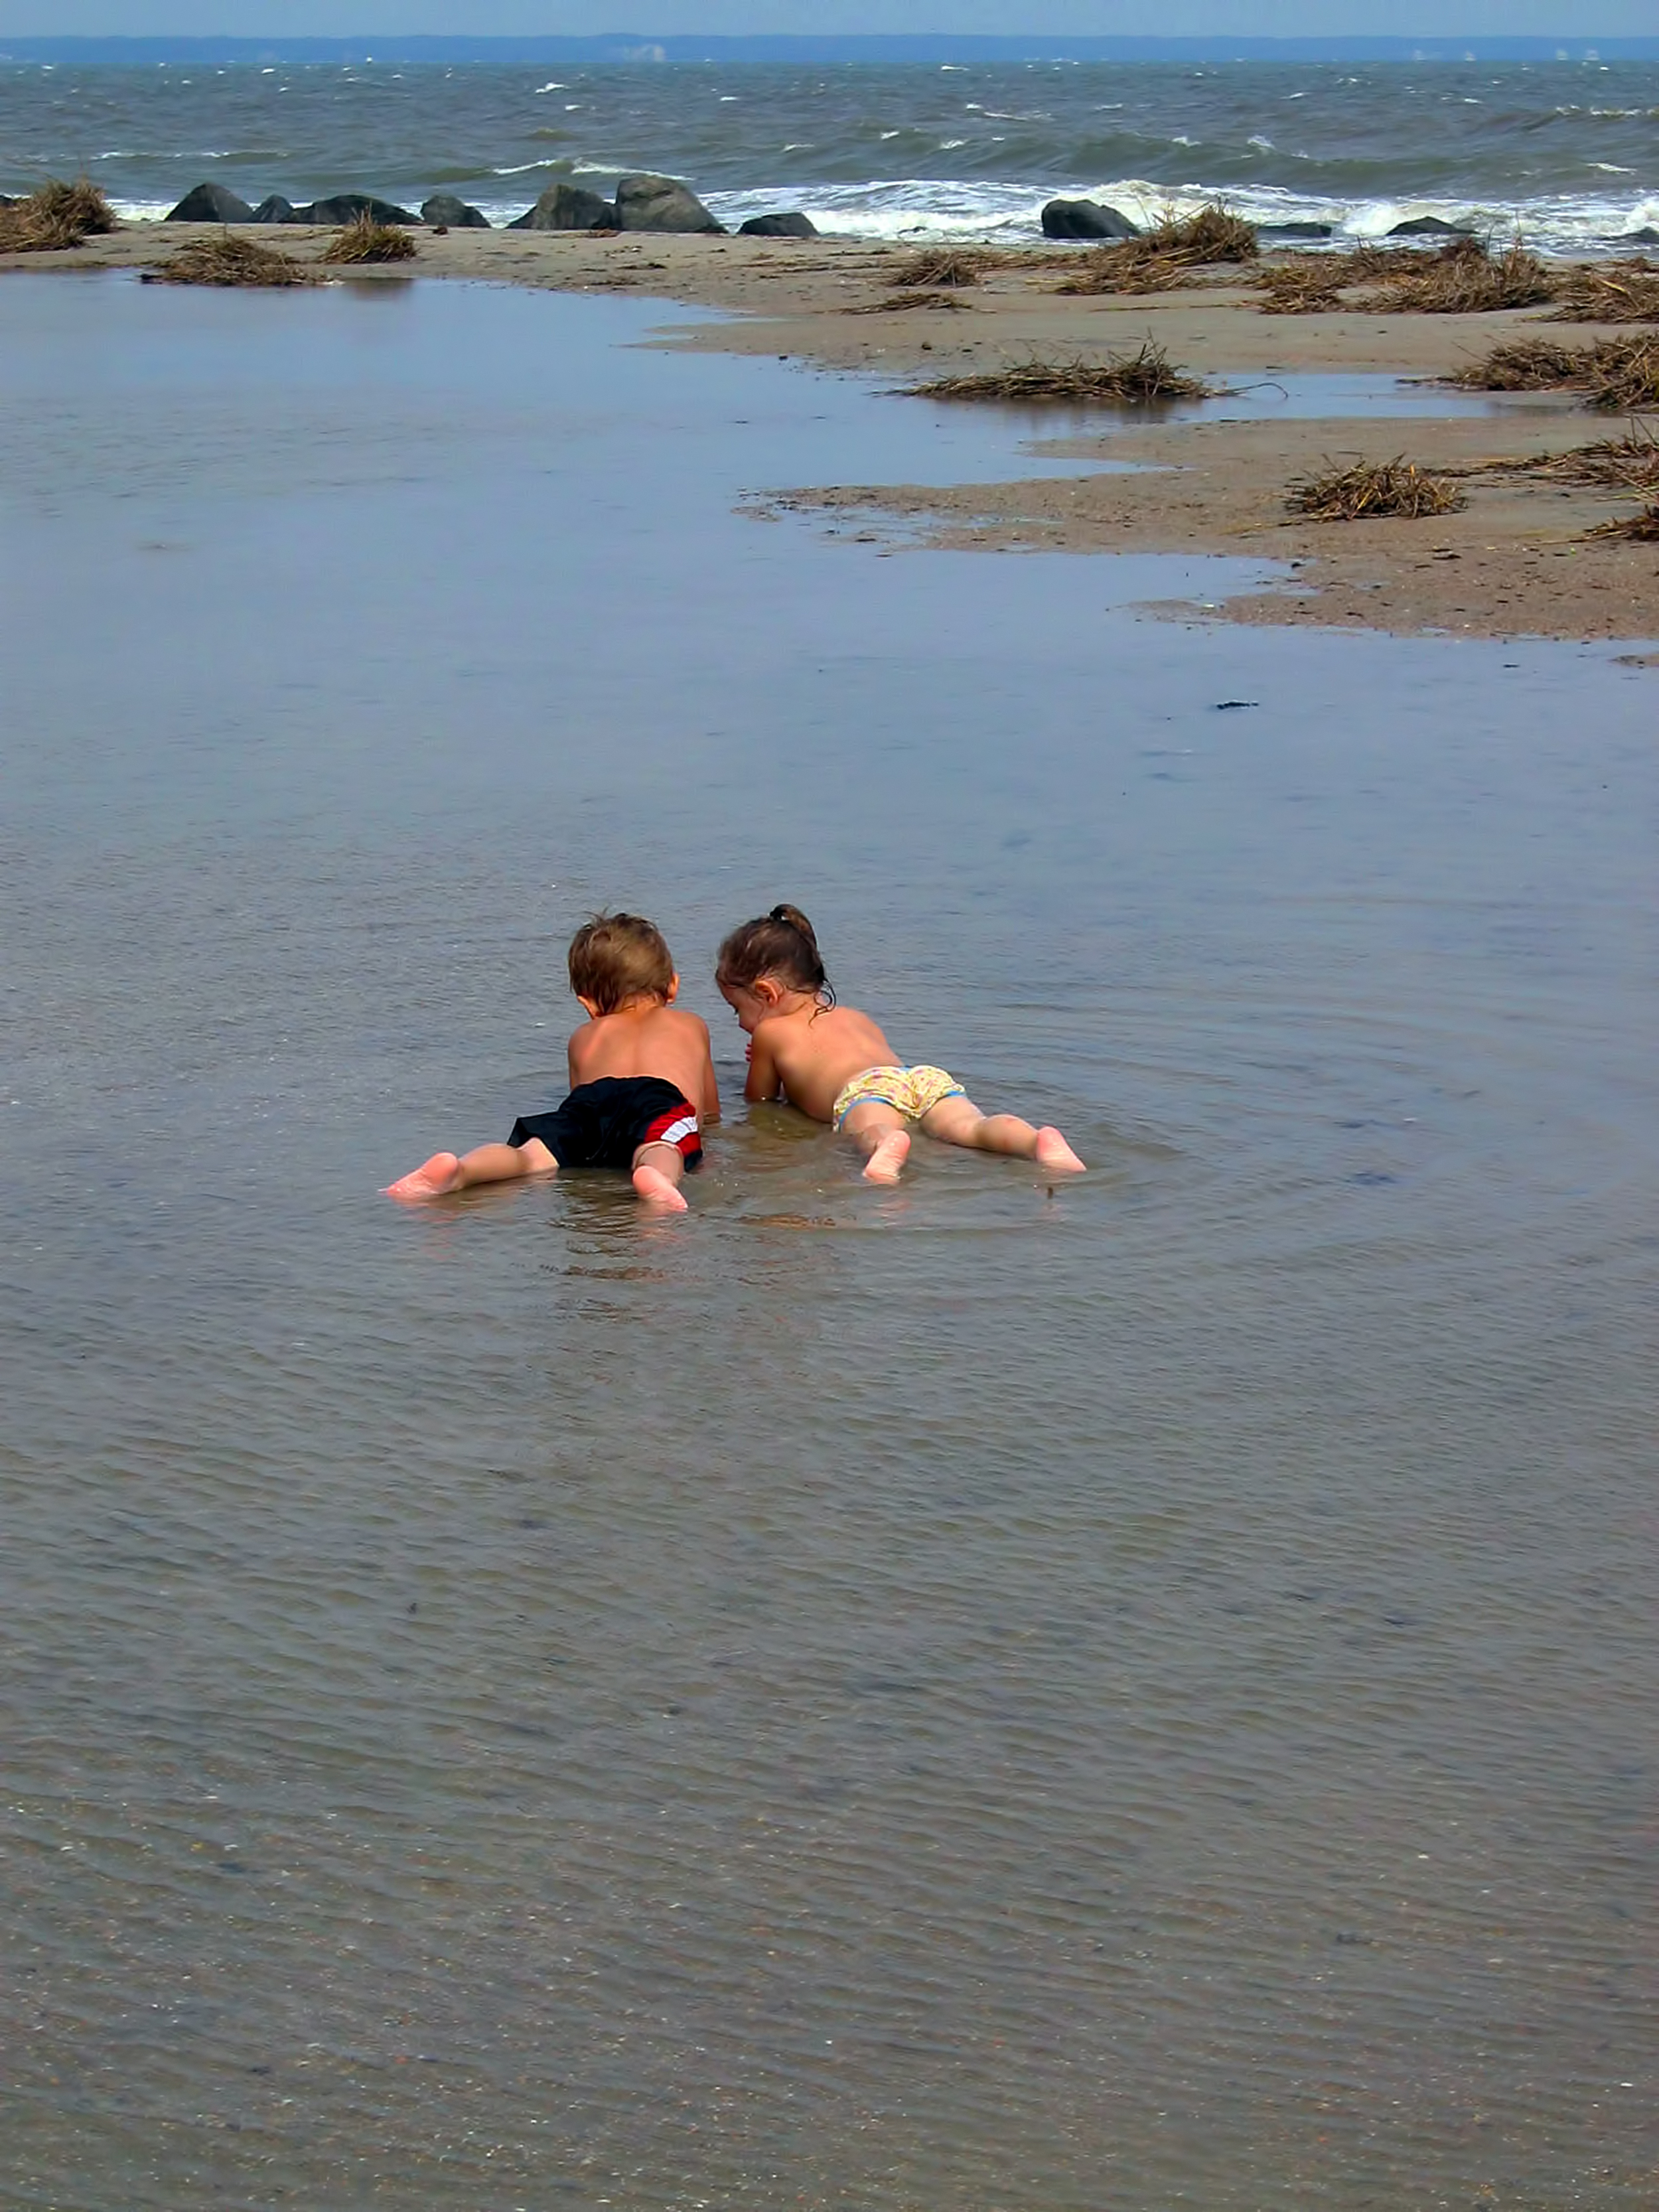 IOA_Tybee_Kids_Tidal_Pool-Edit.jpg